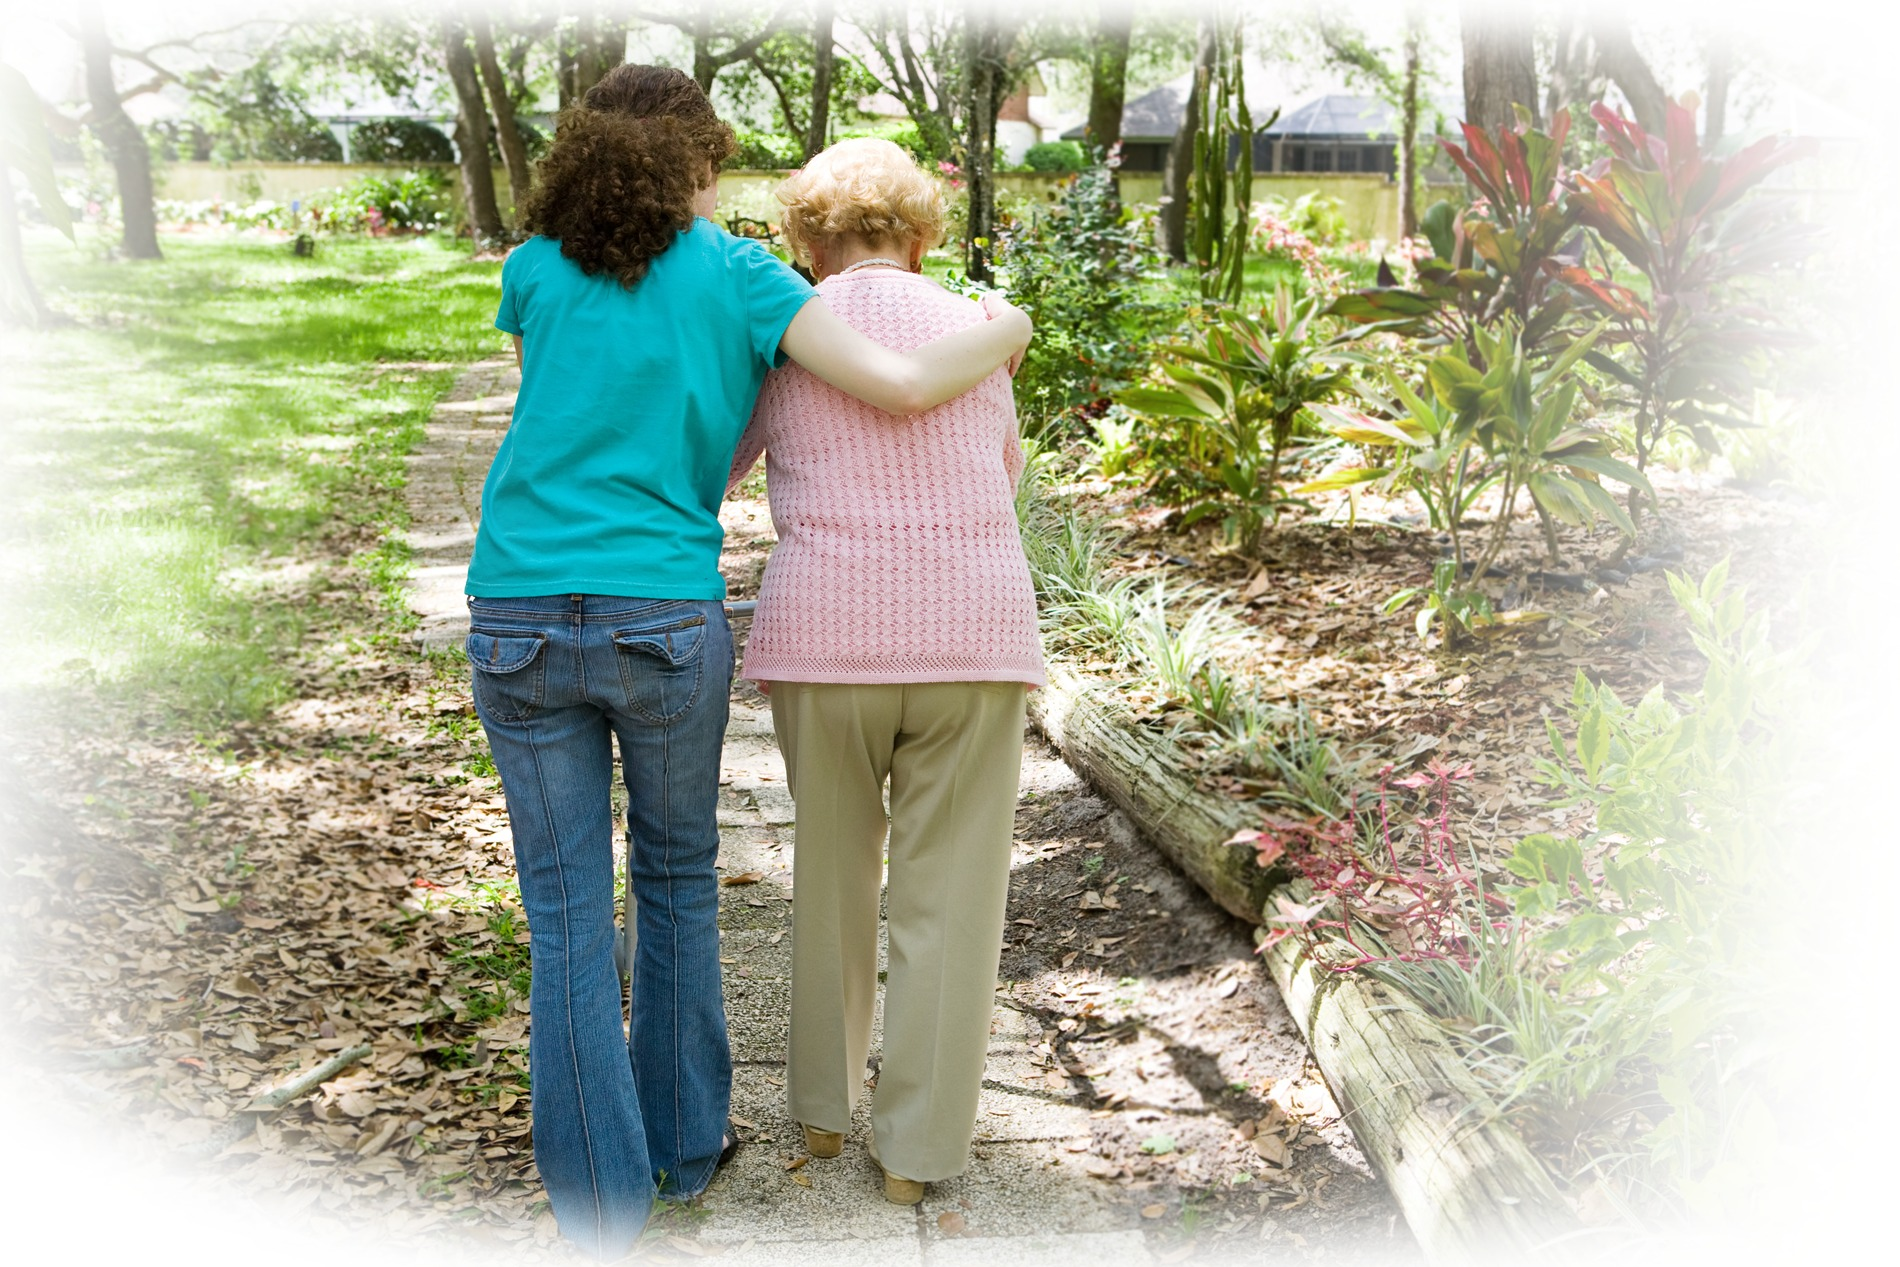 Caregiver providing compassion and safety